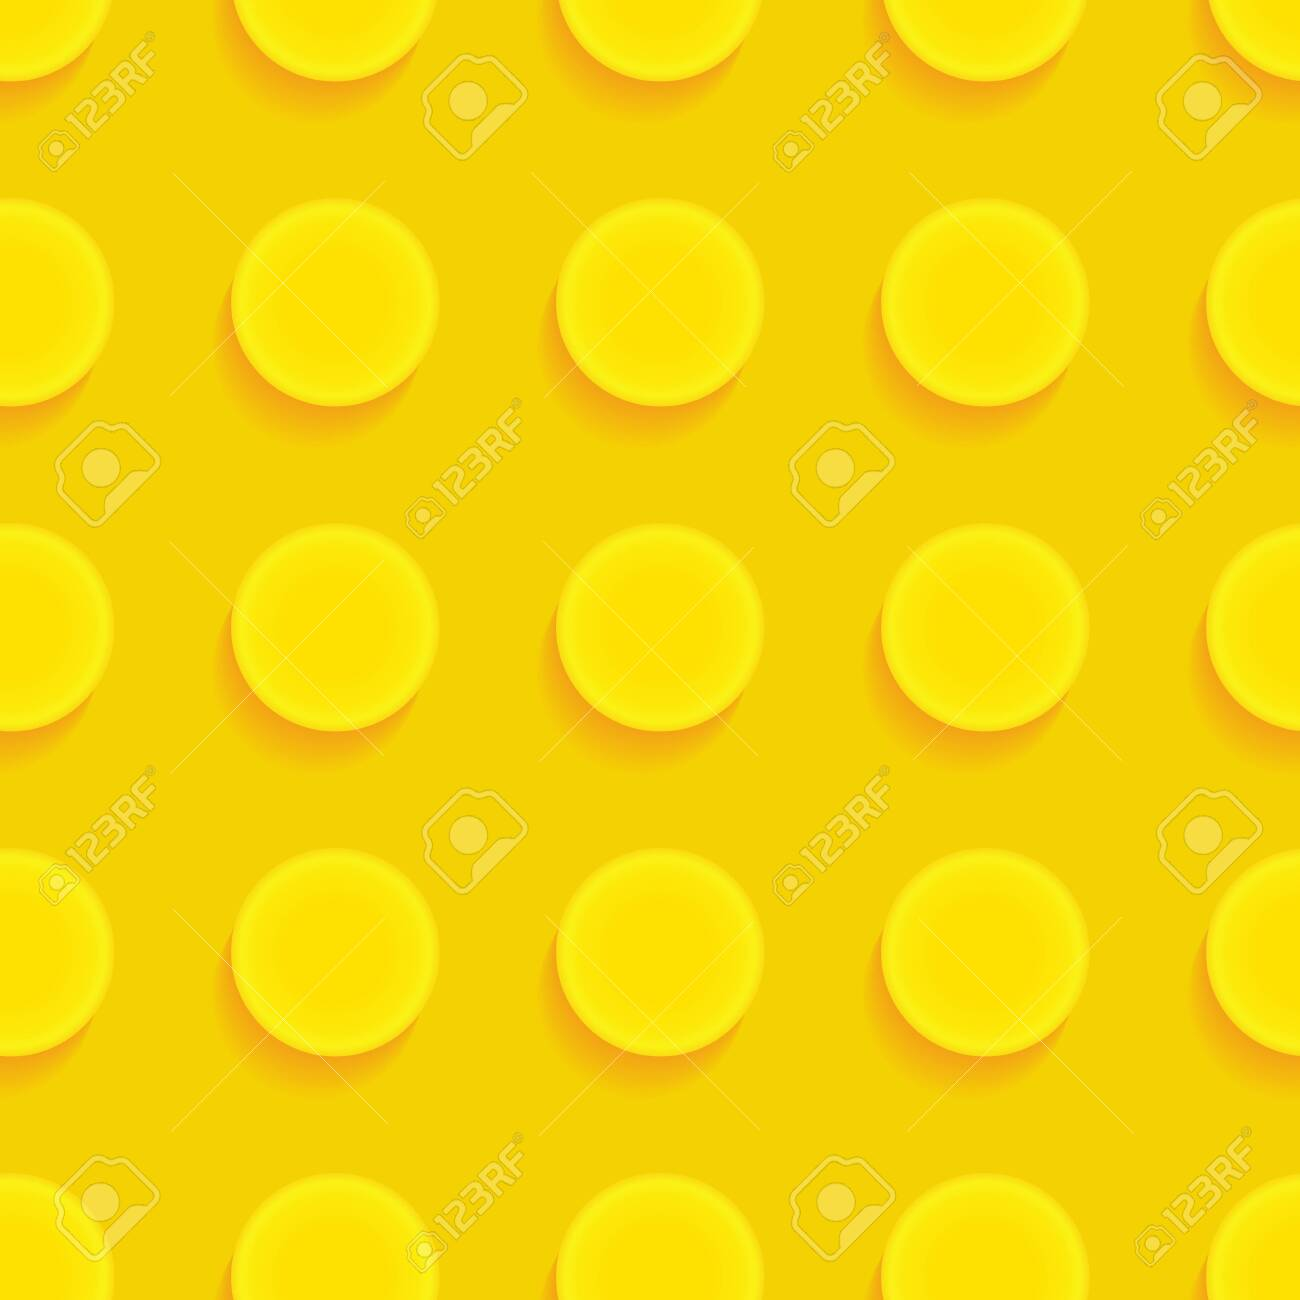 Toy brick puzzle. Seamless vector pattern in cartoon style - 148049585